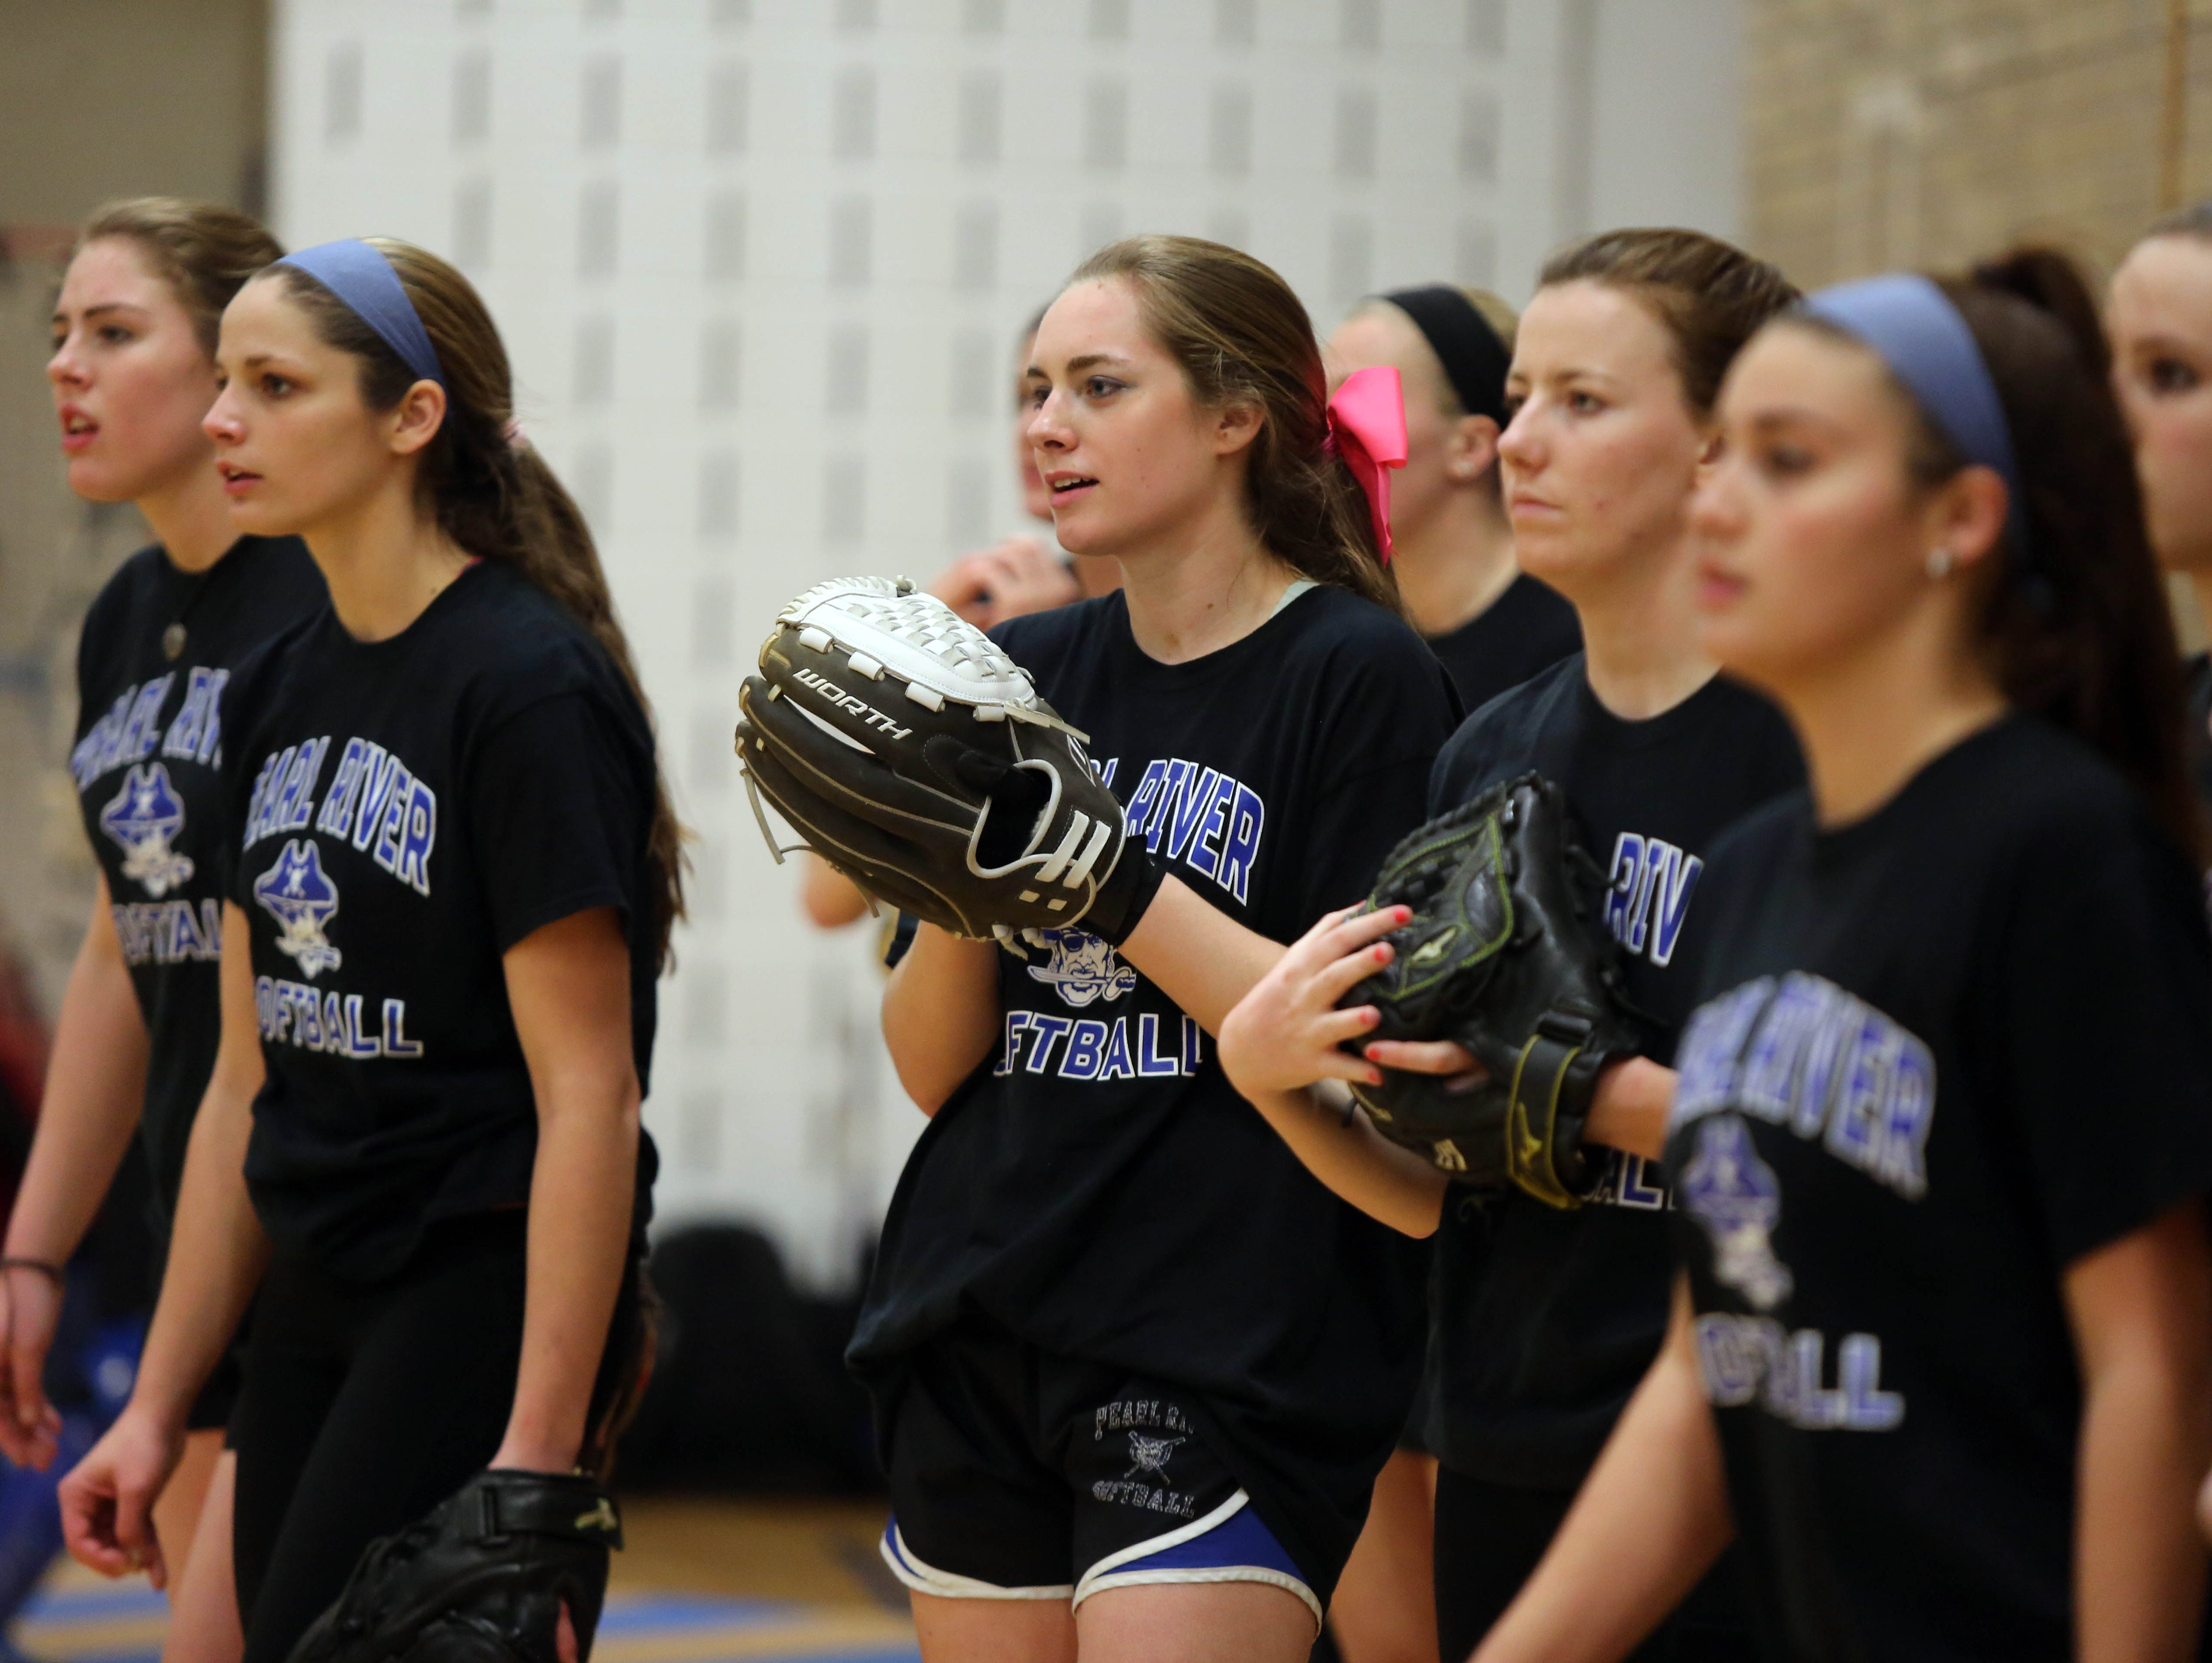 Pearl Rivers girls softball team practices in the gym at the high school on March 14, 2016.